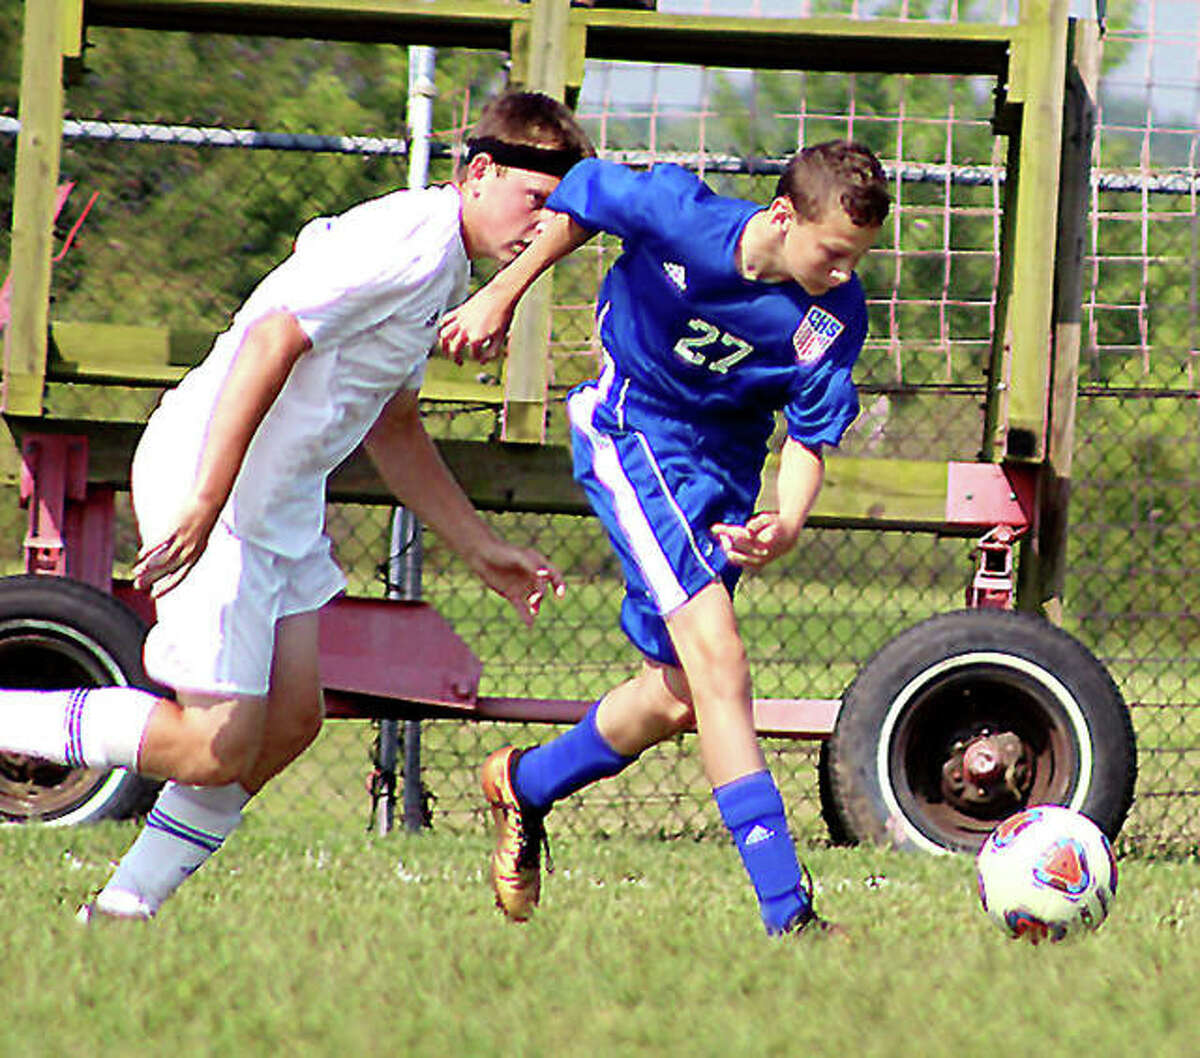 Levi Yudinski of Carlinville, right, scored his team's first goal of the season and its first on the Cavies' new artificial turf field, in Thursday night's 3-0 victory over Staunton. He is shown in action last season.